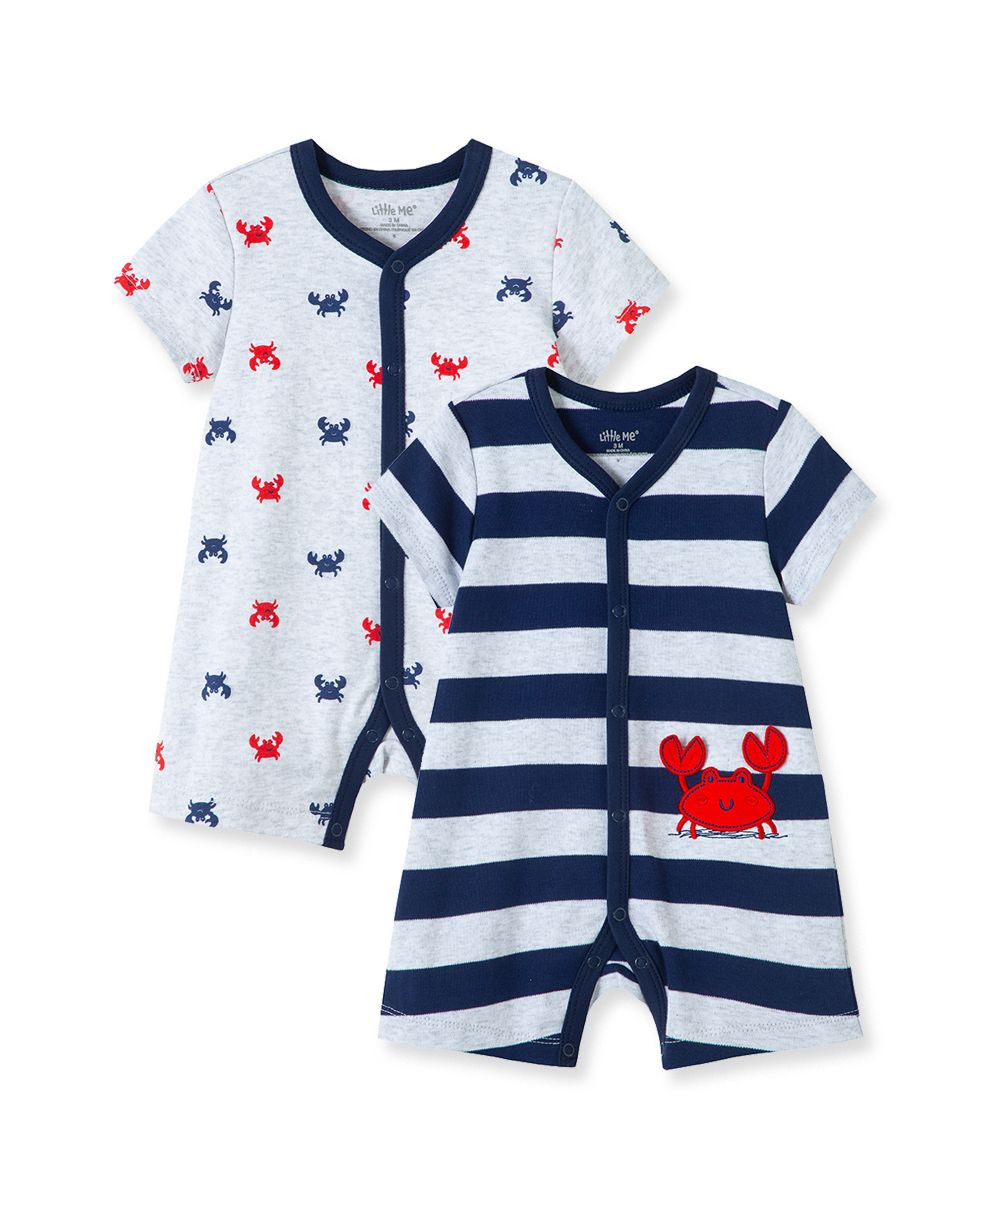 Crab 2PK Romper Set